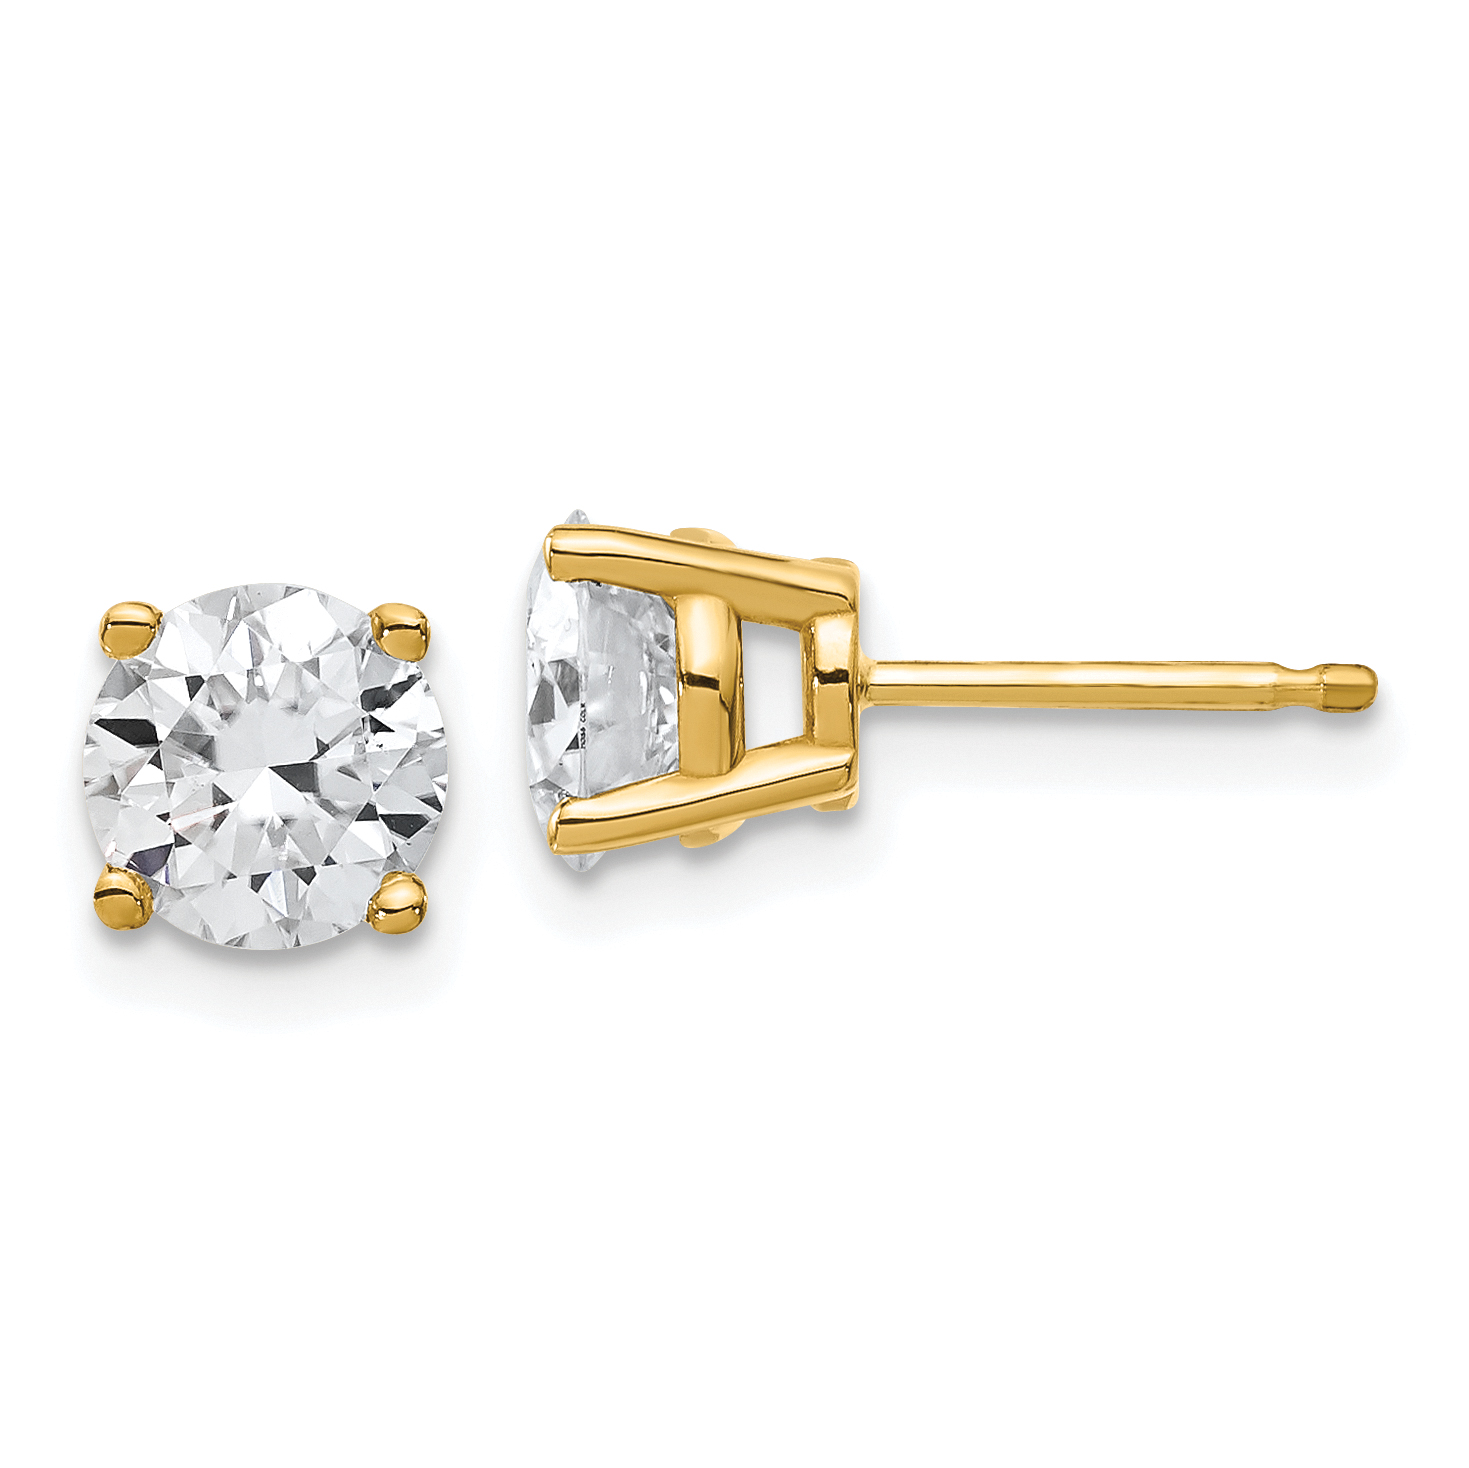 white set moissanite engagement forever inspirational invisible arnell e of gold judith earrings diamond stud awesome